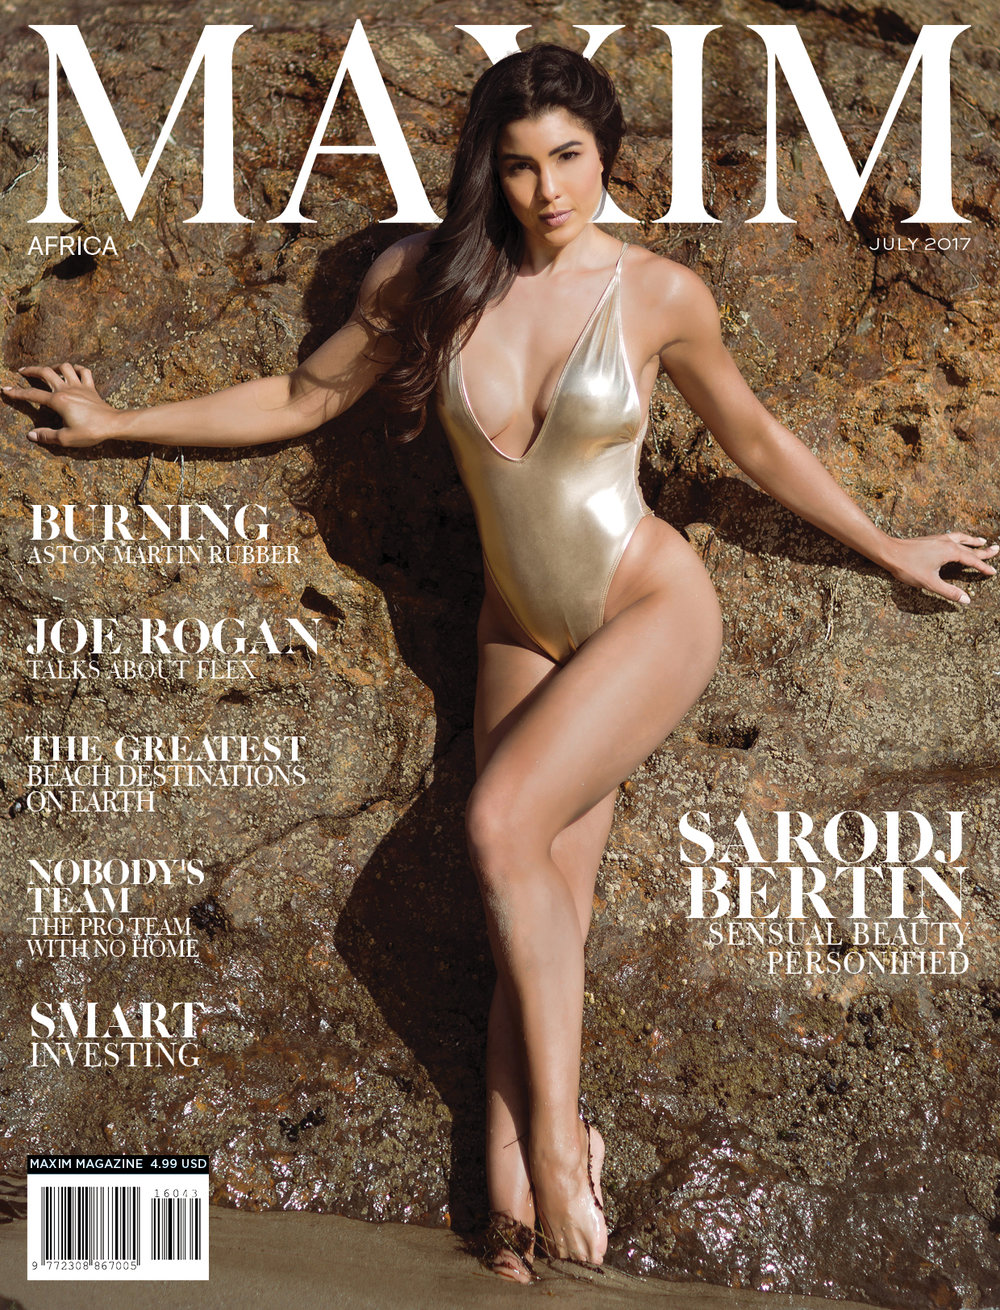 Sarodj Bertin by Dali Ma for Maxim Africa Cover